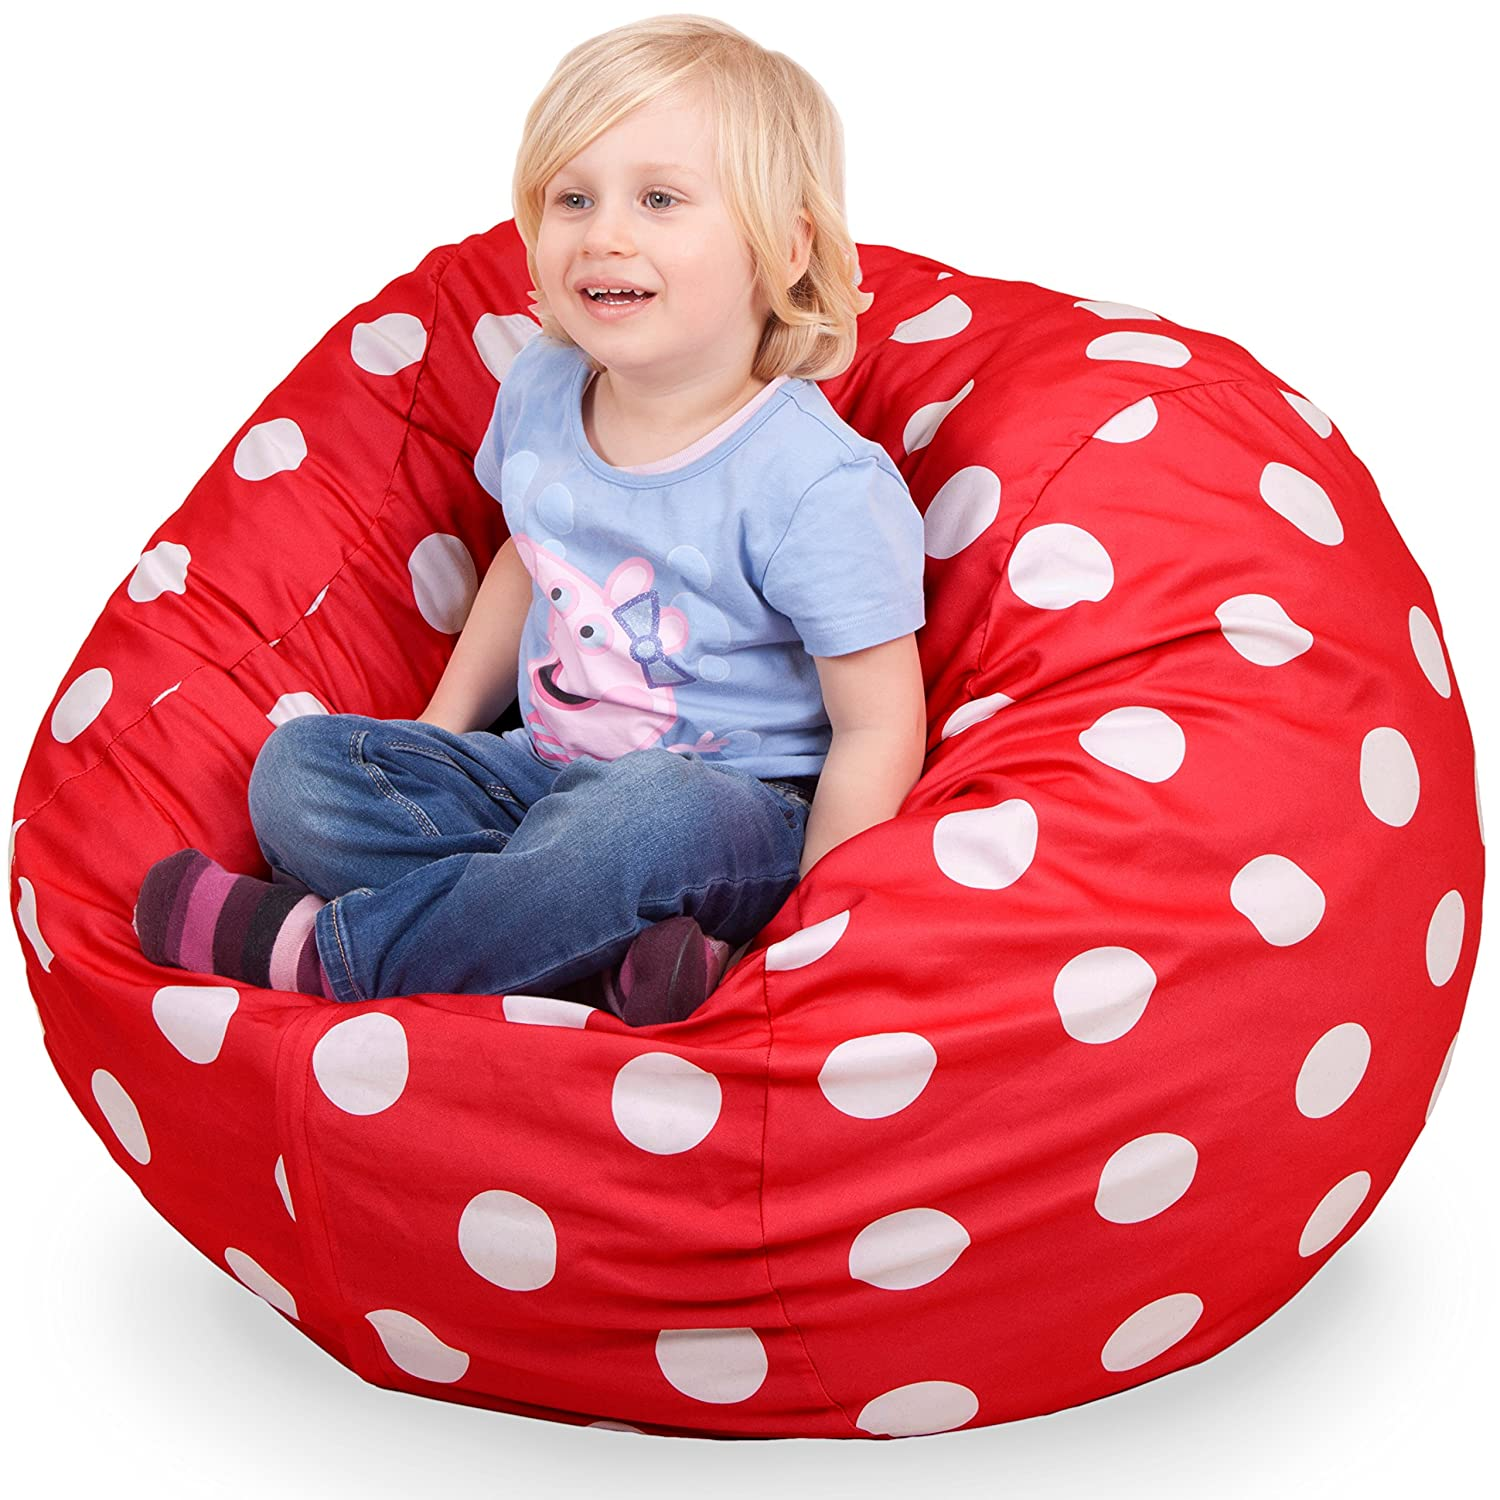 Amazon Oversized Bean Bag Chair in Flaming Red & White Polka